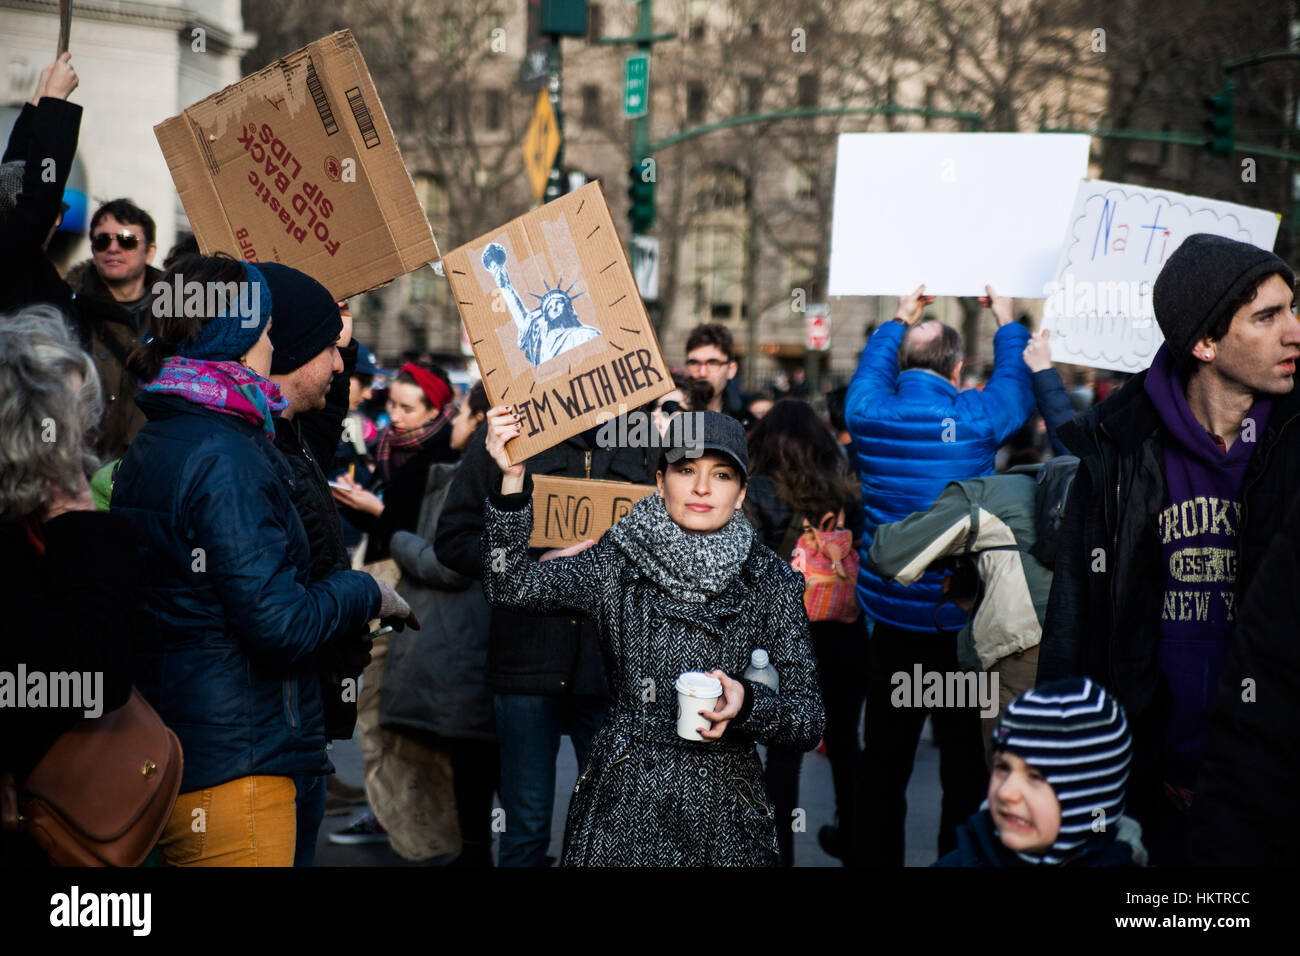 New York City, USA. 29th Jan, 2017. Protestors demonstrate against American President Donald Trump's immigration Stock Photo